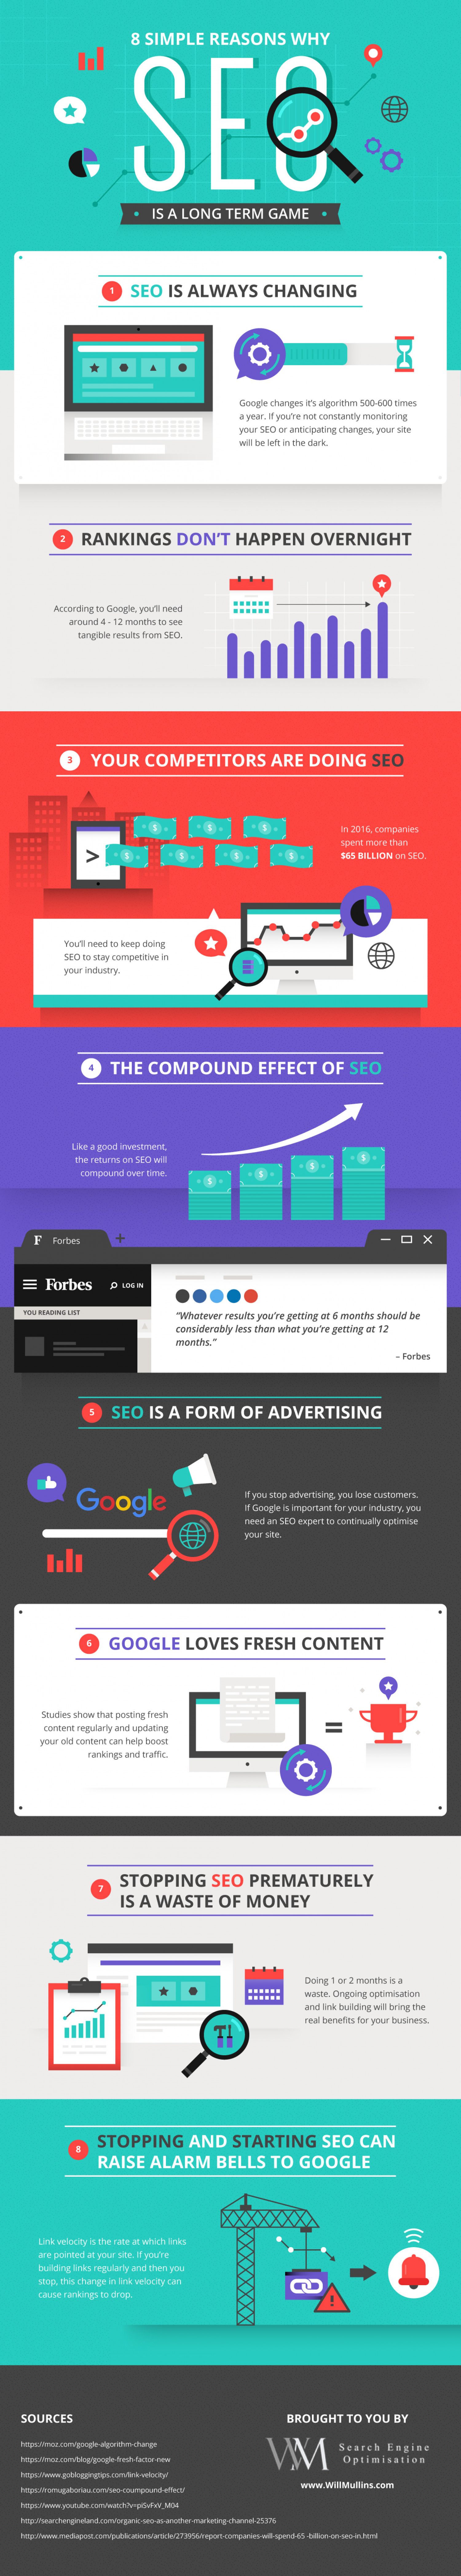 8 Simple Reasons Why SEO Is A Long Term Game Infographic